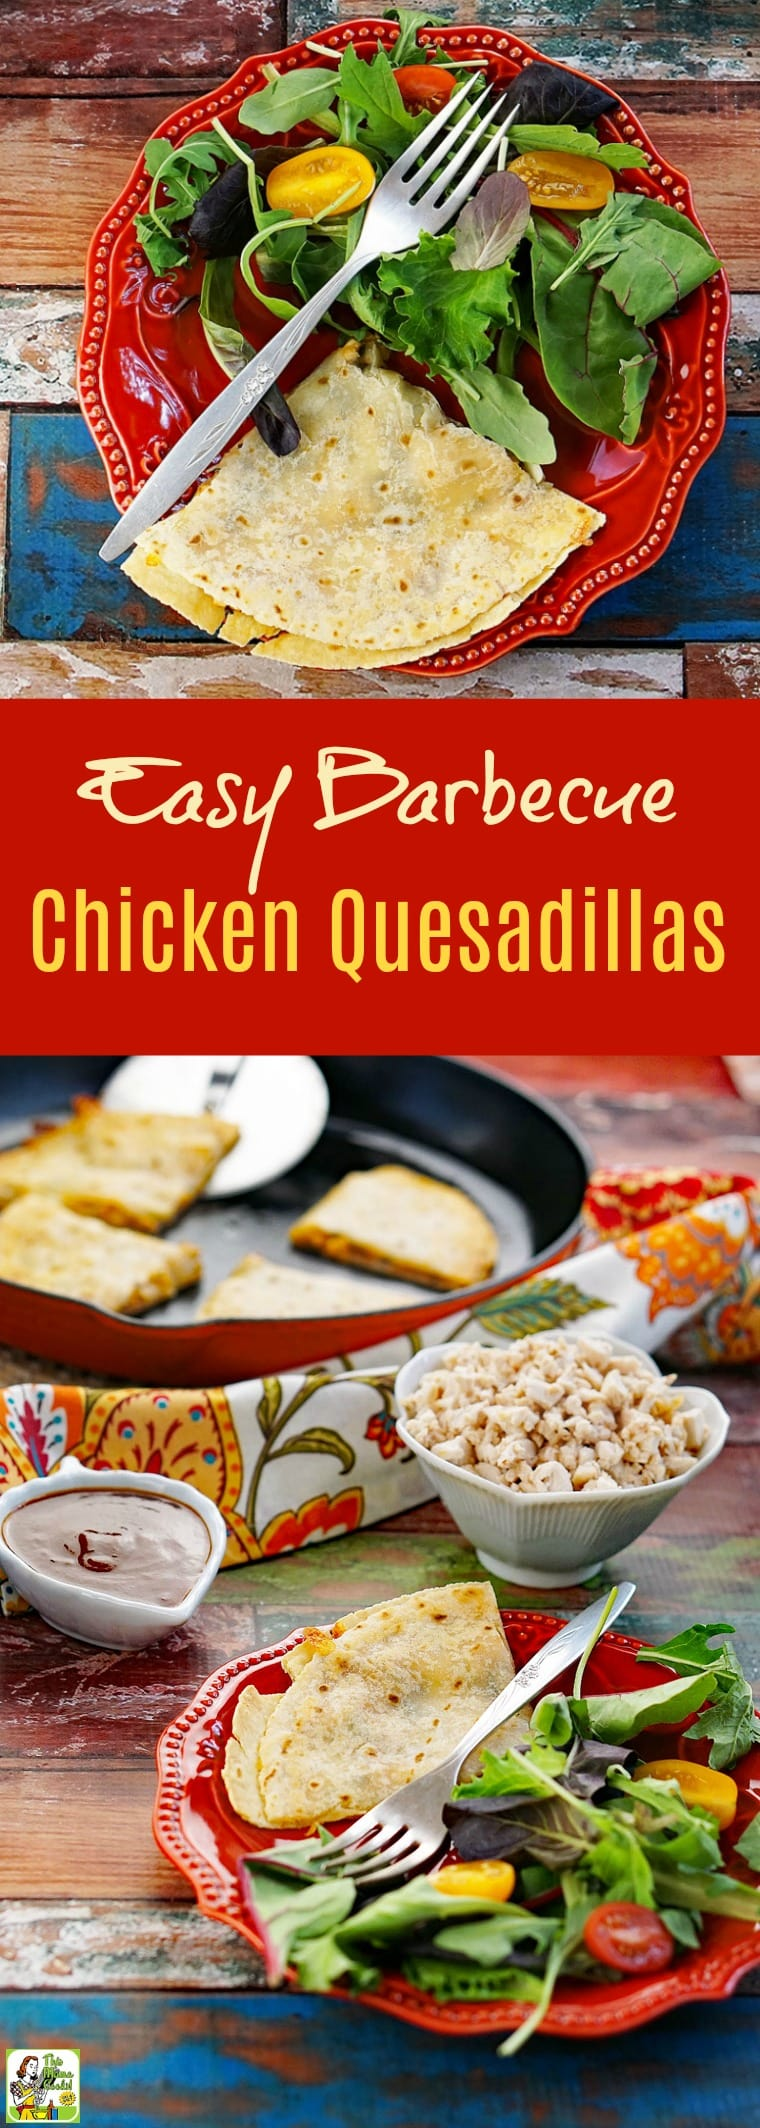 Make this Easy Barbecue Chicken Quesadillas recipe for dinner with a side salad. Click to get this easy bbq chicken quesadilla recipe.